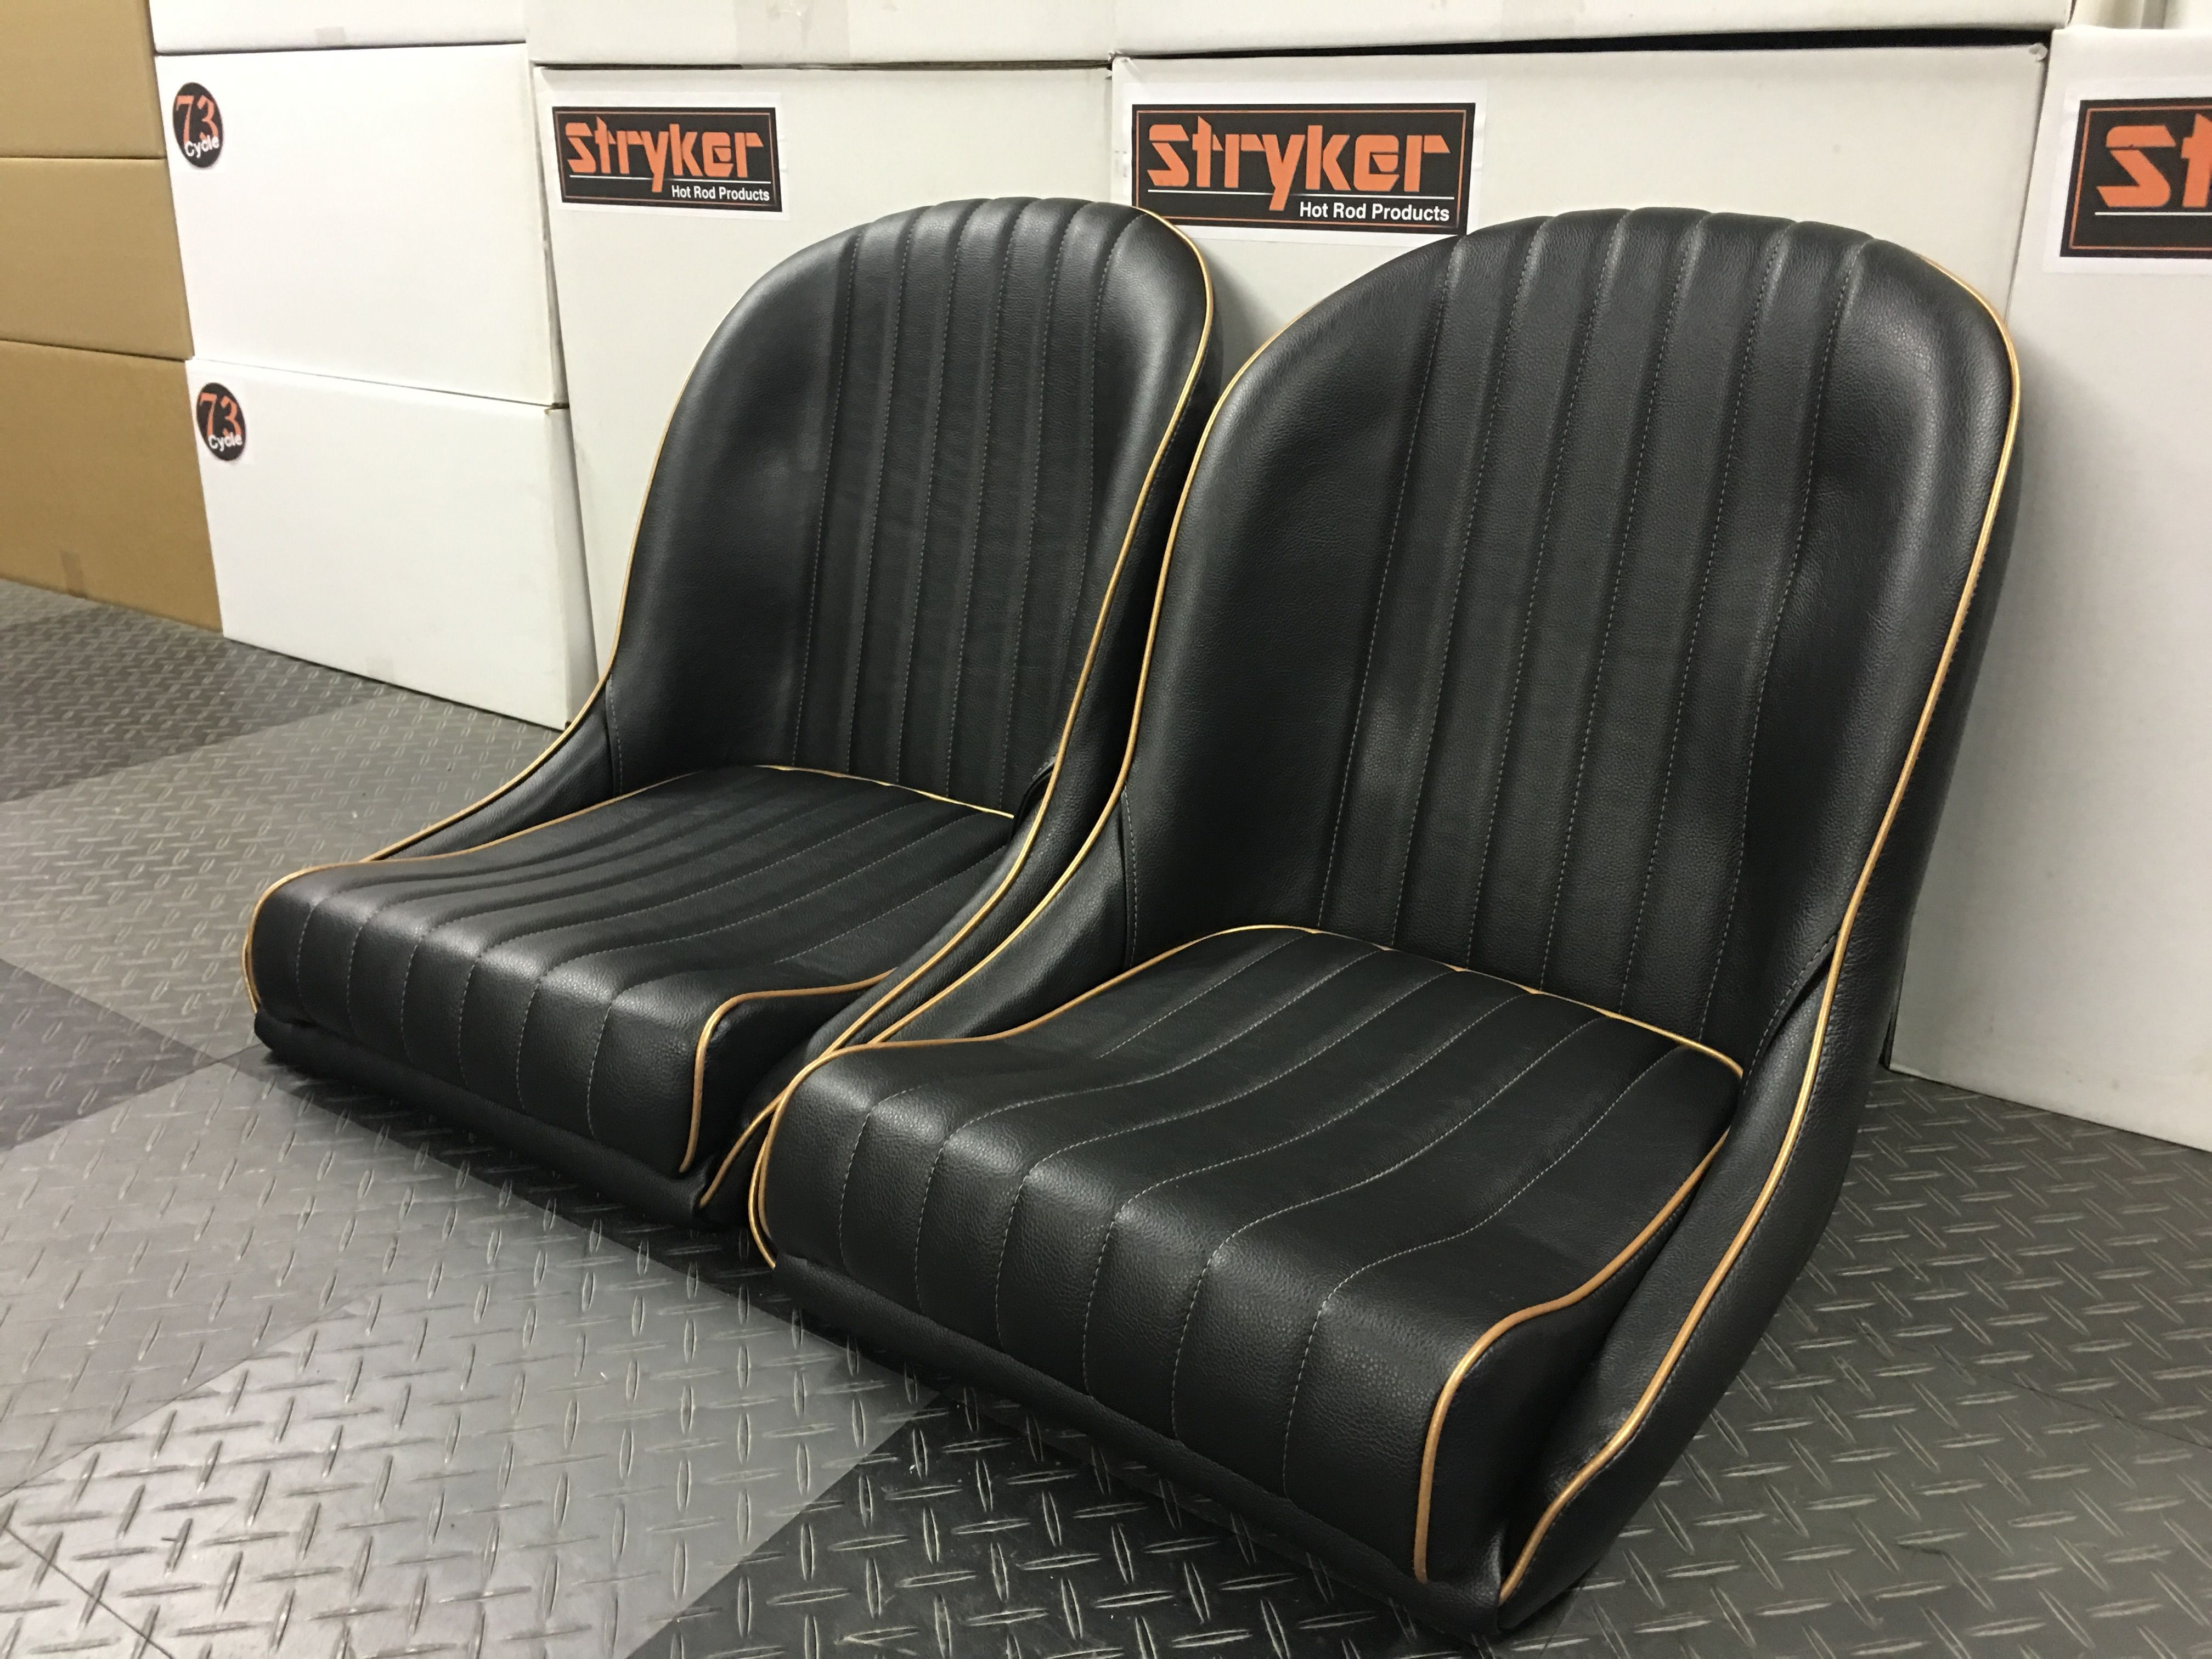 5 Gallon Bucket Seat With Backrest